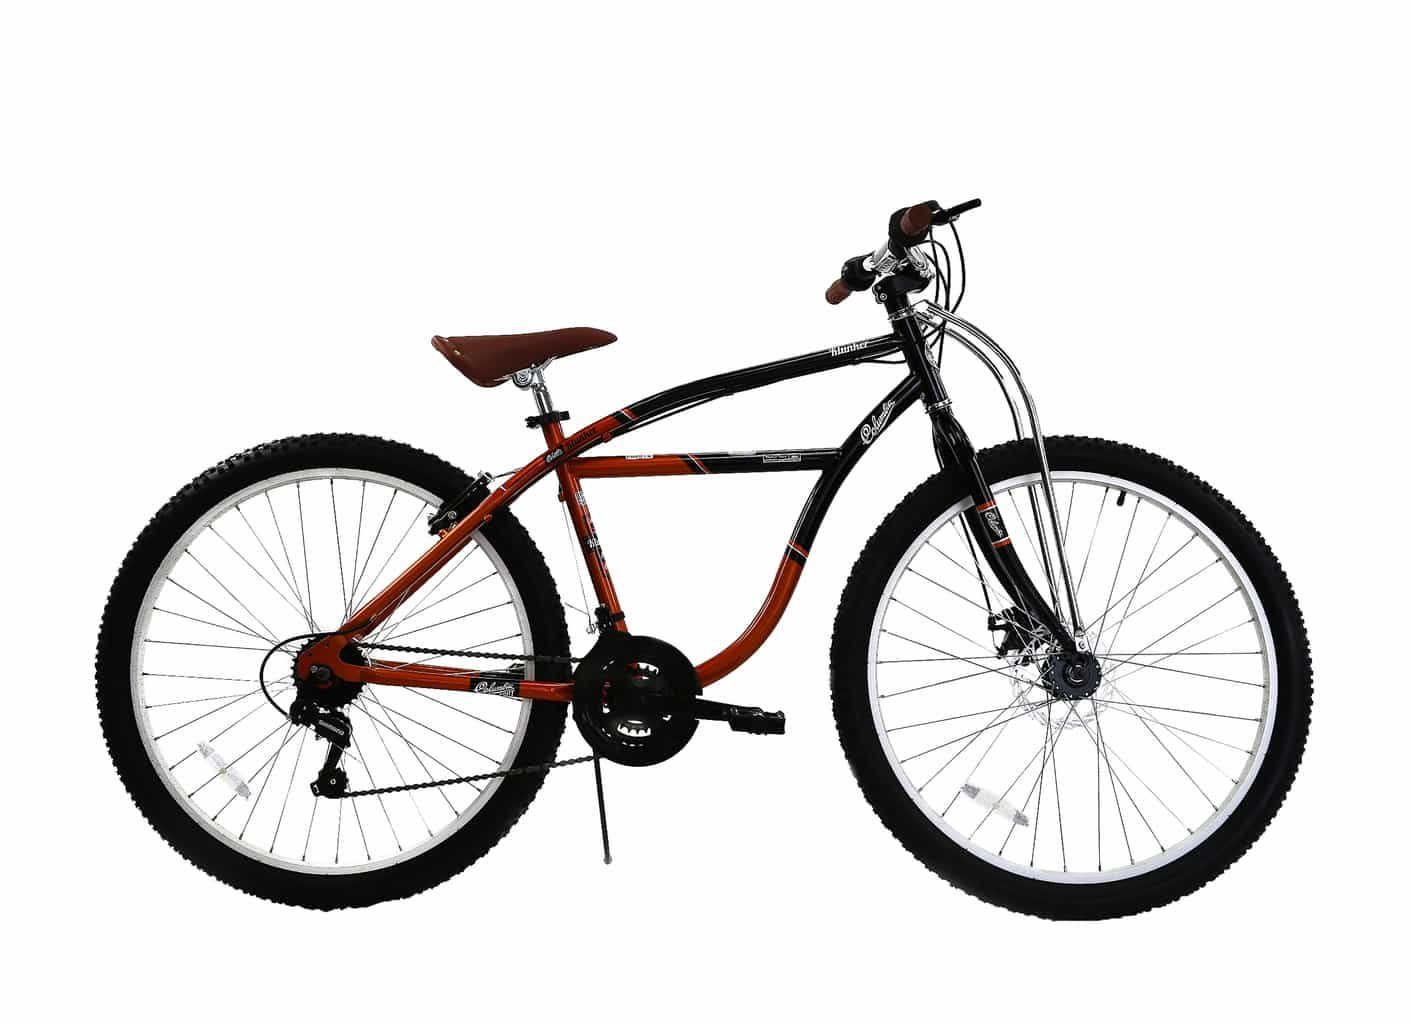 Spratly Brands 27.5 Columbia Klunker Mountain Bike - Black/Red/Brown